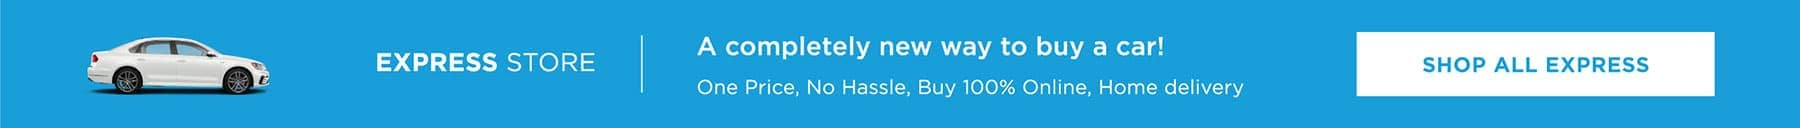 A completely new way to buy a car! One price, no hassle, buy 100% online, home delivery.